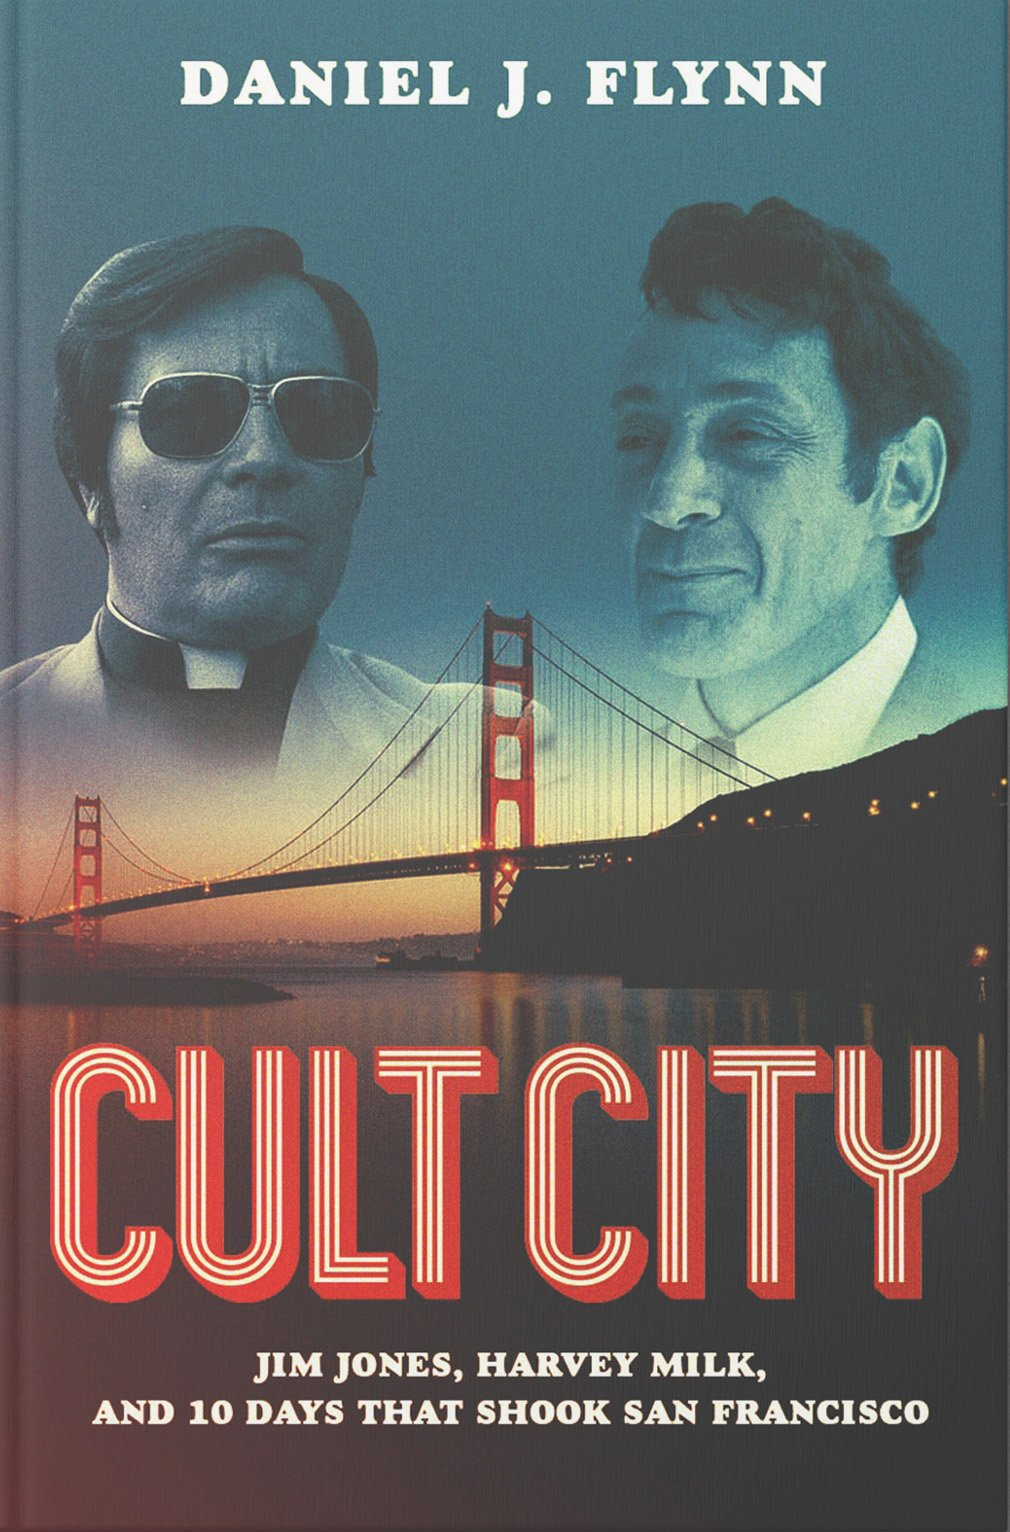 Cult City: Jim Jones, Harvey Milk, and 10 Days That Shook San Francisco